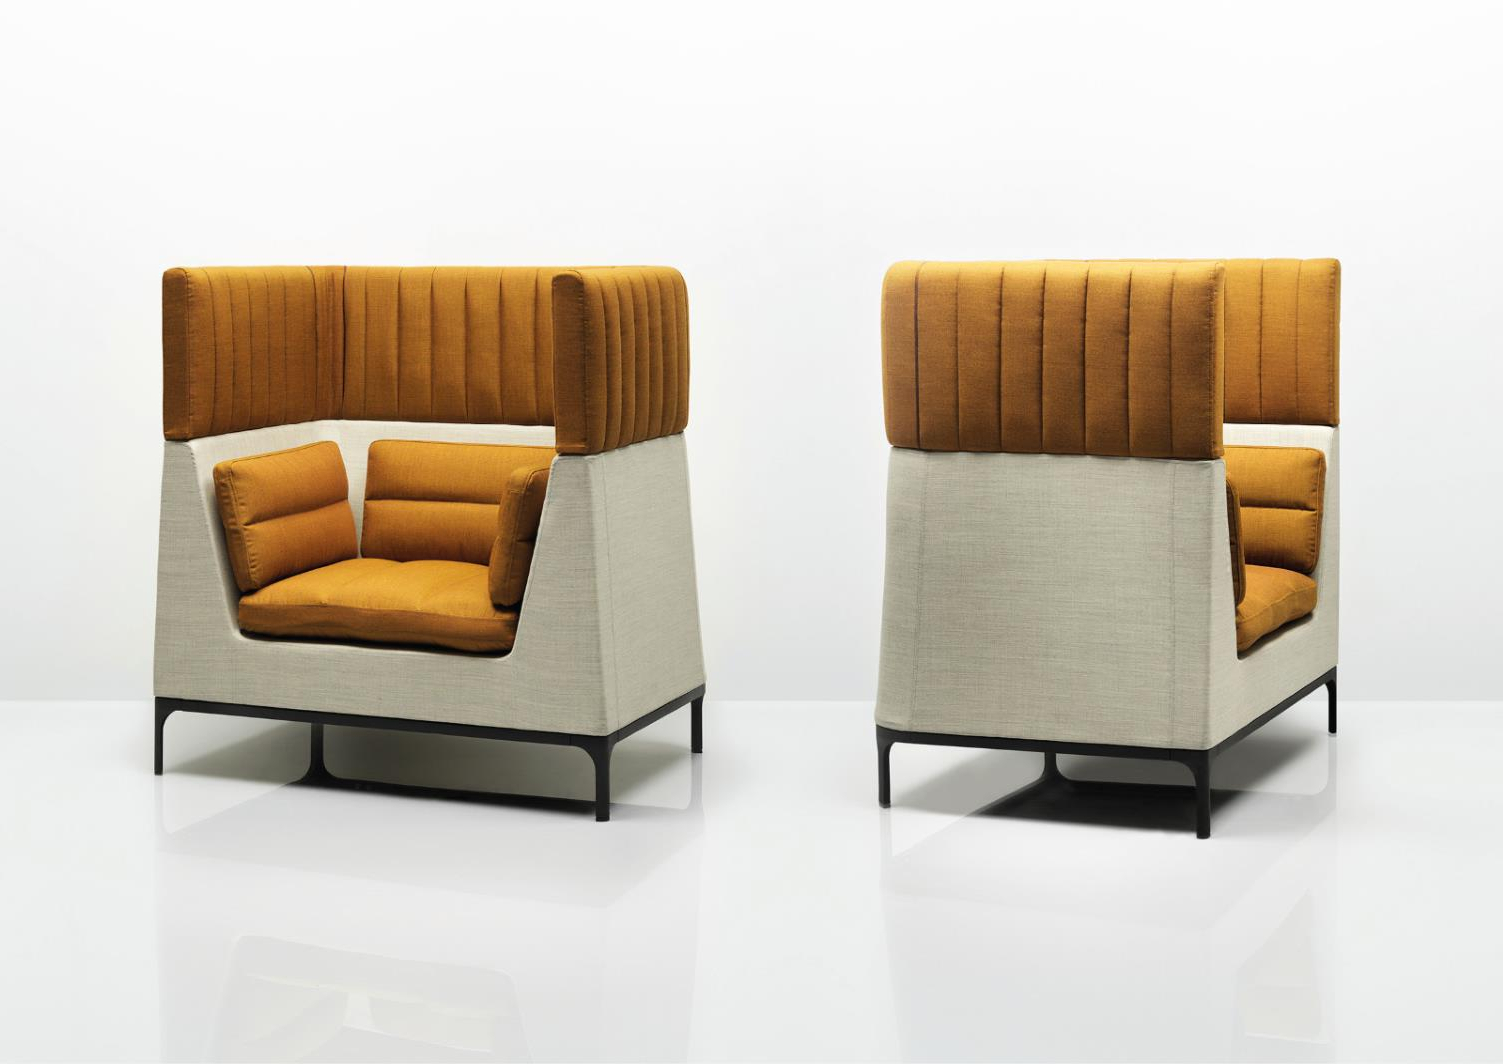 Reception & Soft Seating – Now Furniture Within Popular Haven Sofa Chairs (Gallery 5 of 20)